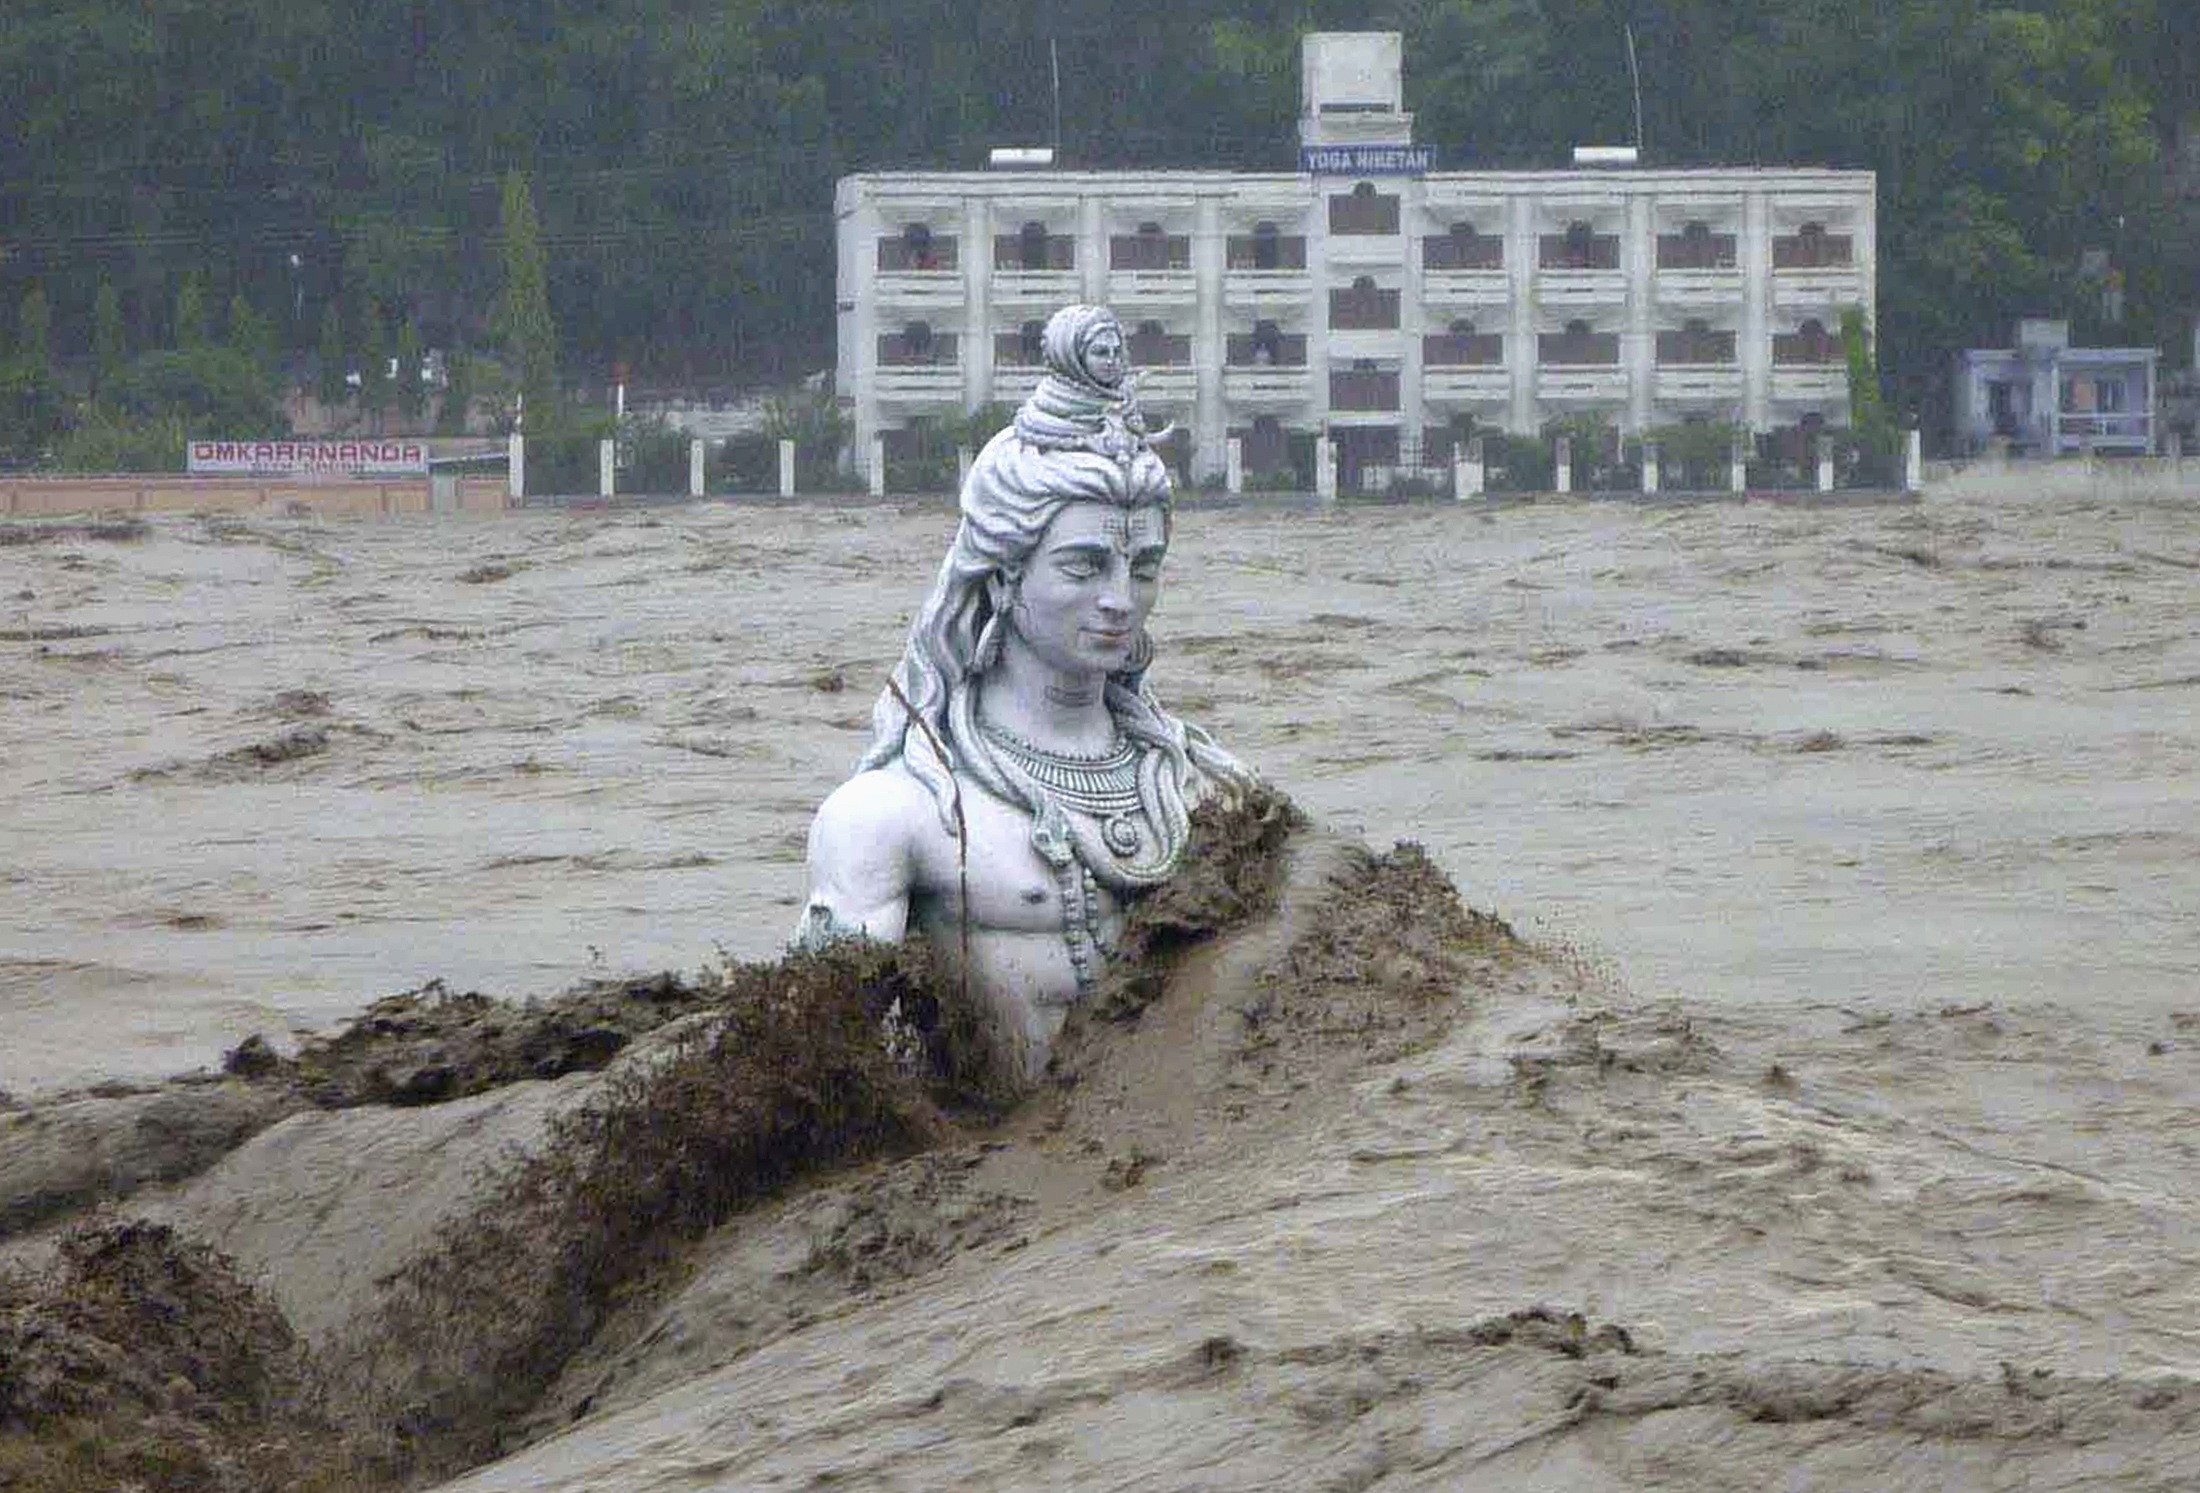 10 - A submerged statue of the Hindu Lord Shiva amid the flood waters of the river Ganges, June 17, 2013